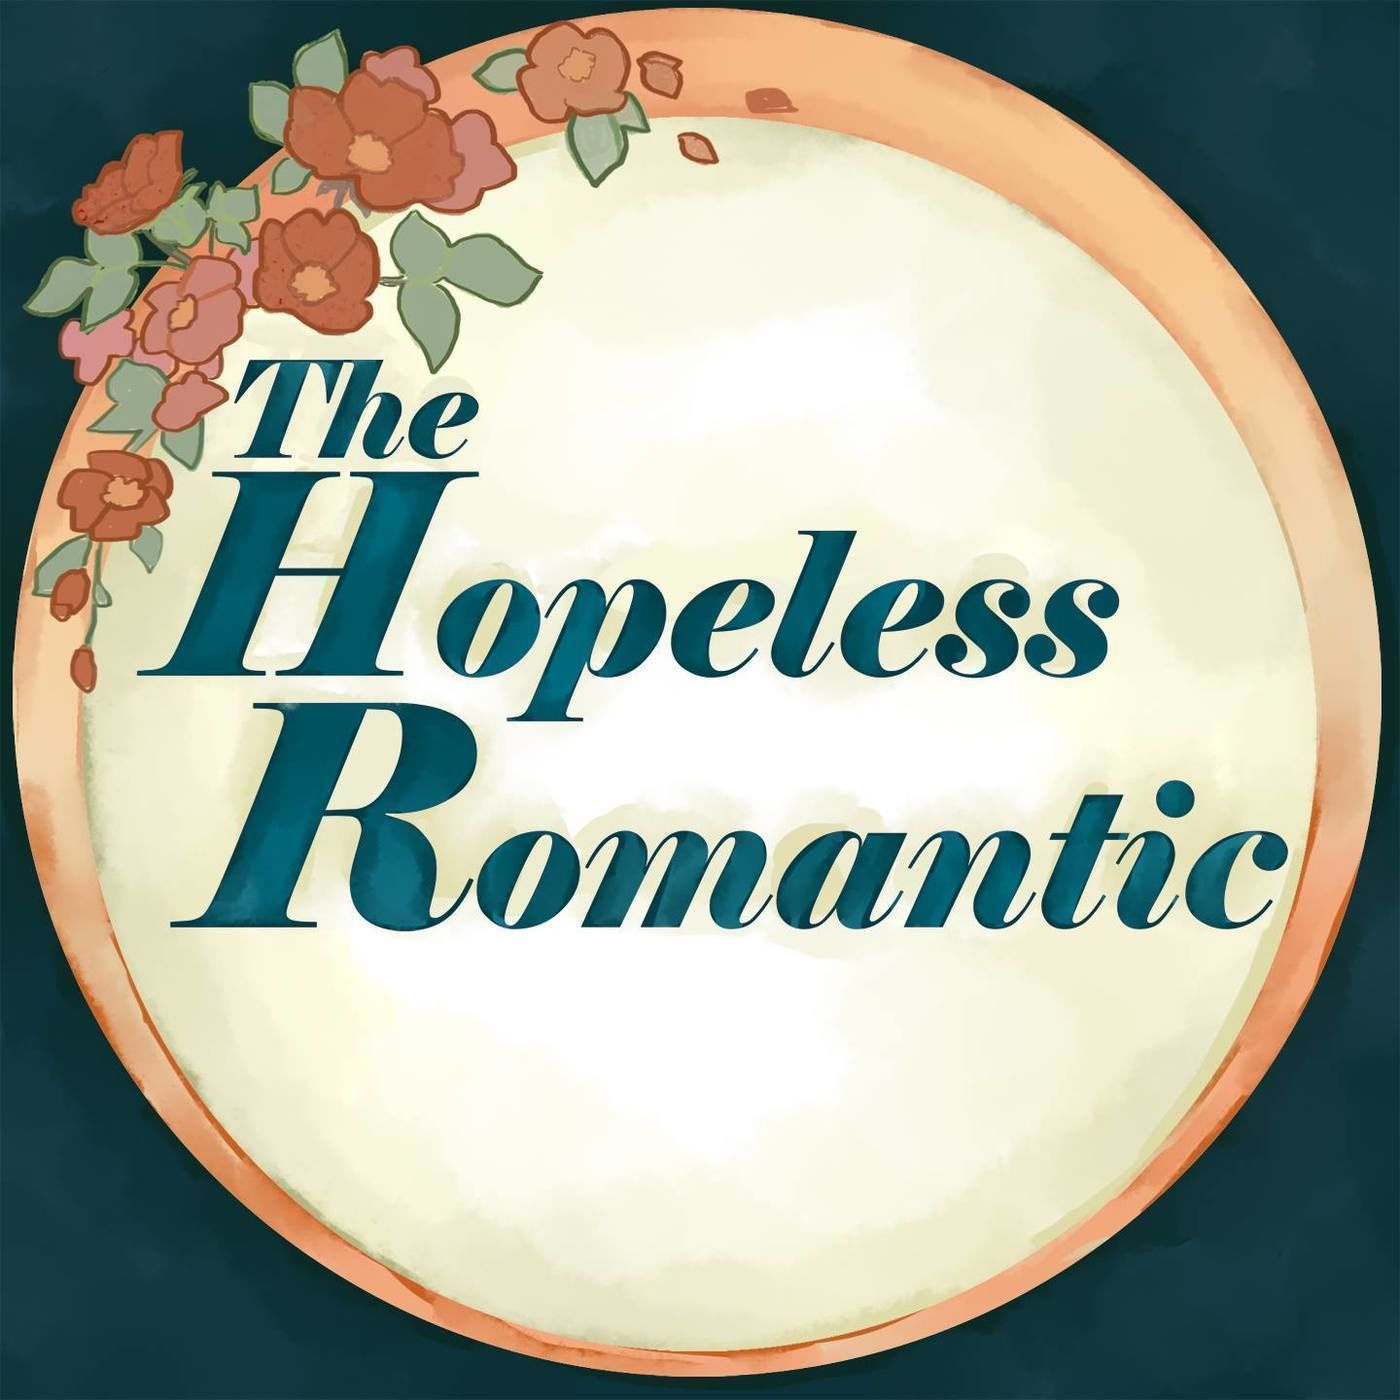 Episode 39: What's In A Pen Name? The Hopeless Romantic podcast